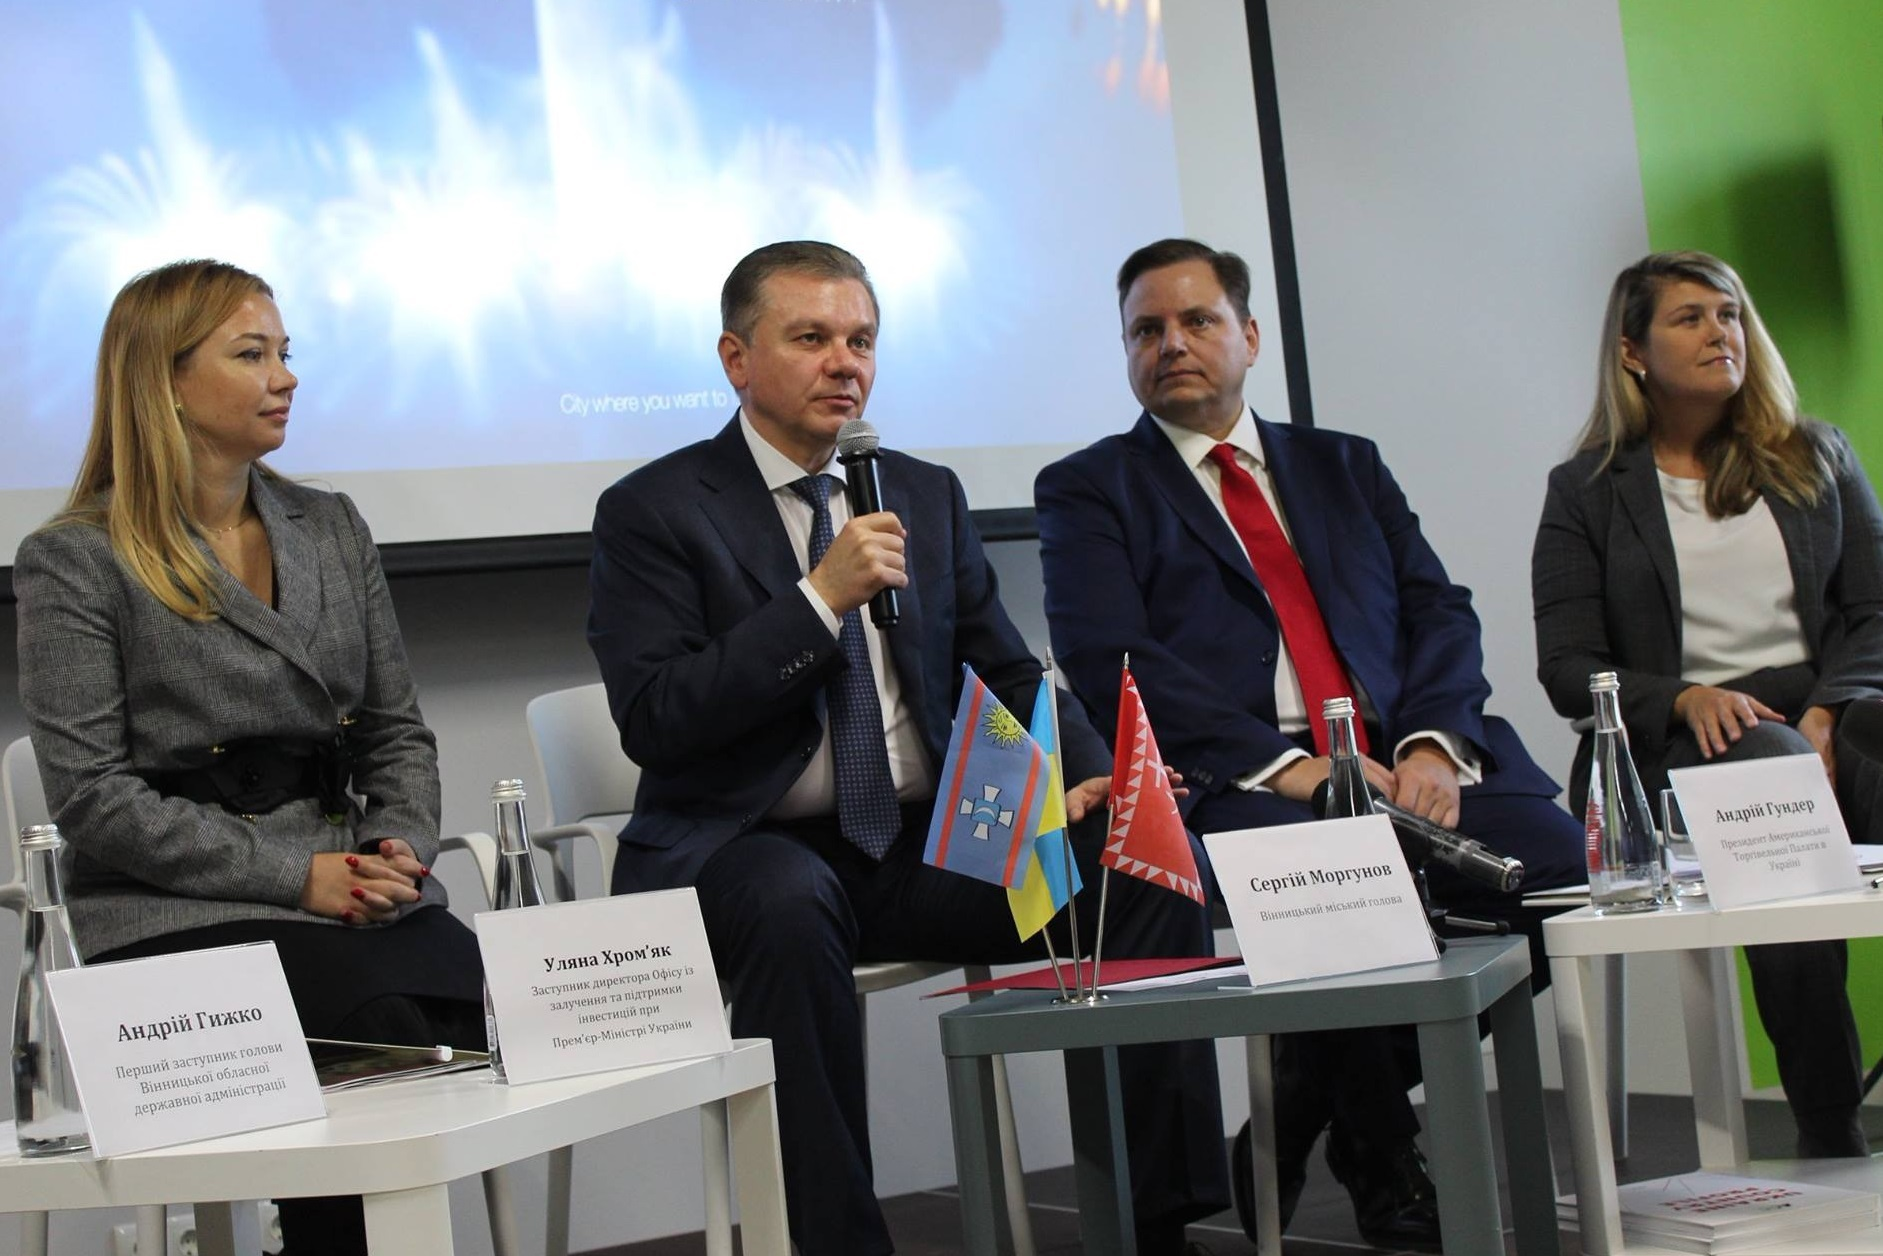 The investment potential of Vinnytsia was presented to one of the most famous business associations in the world